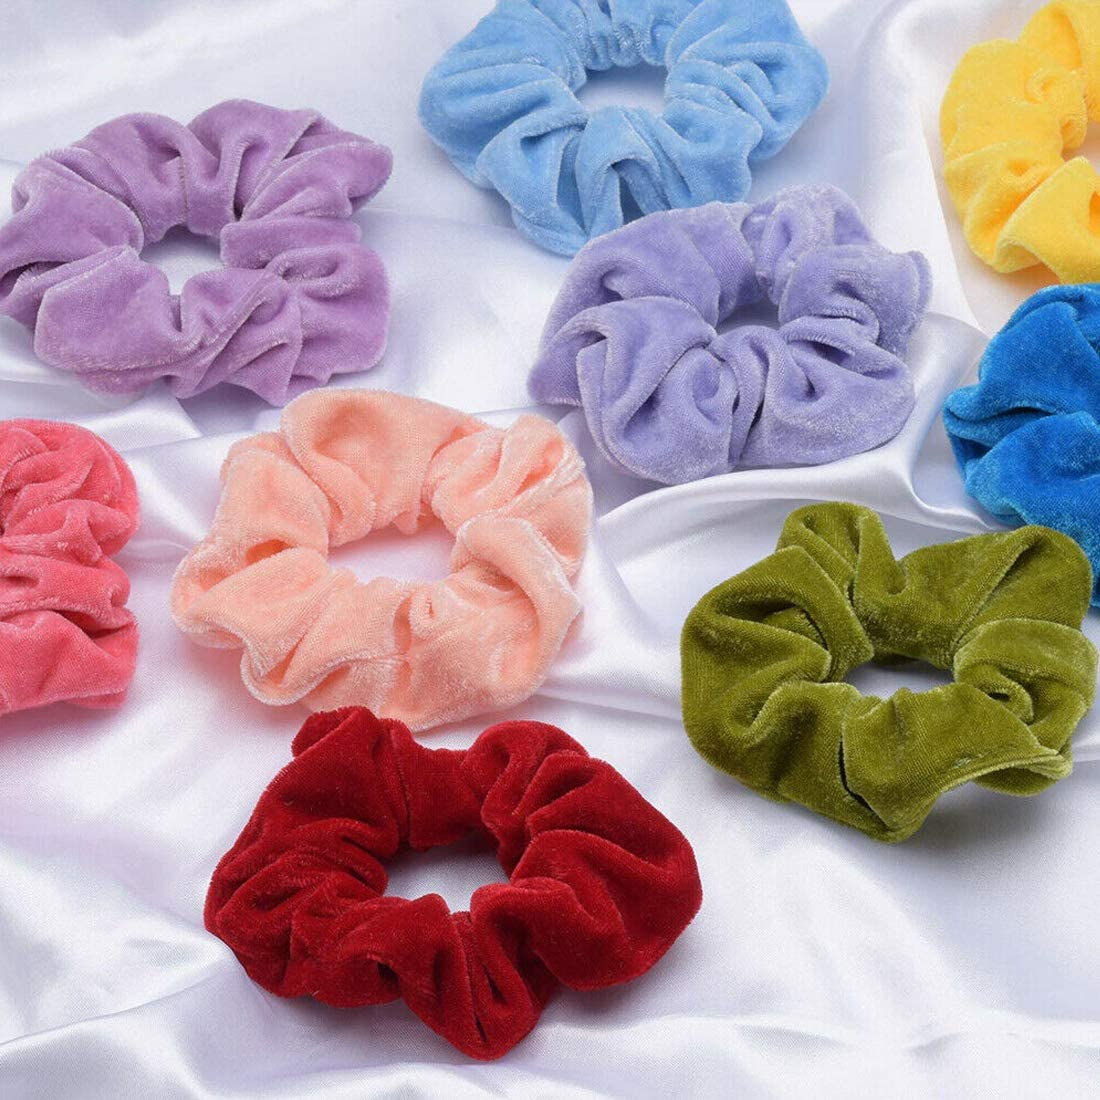 Hair Scrunchies Syolee Toy